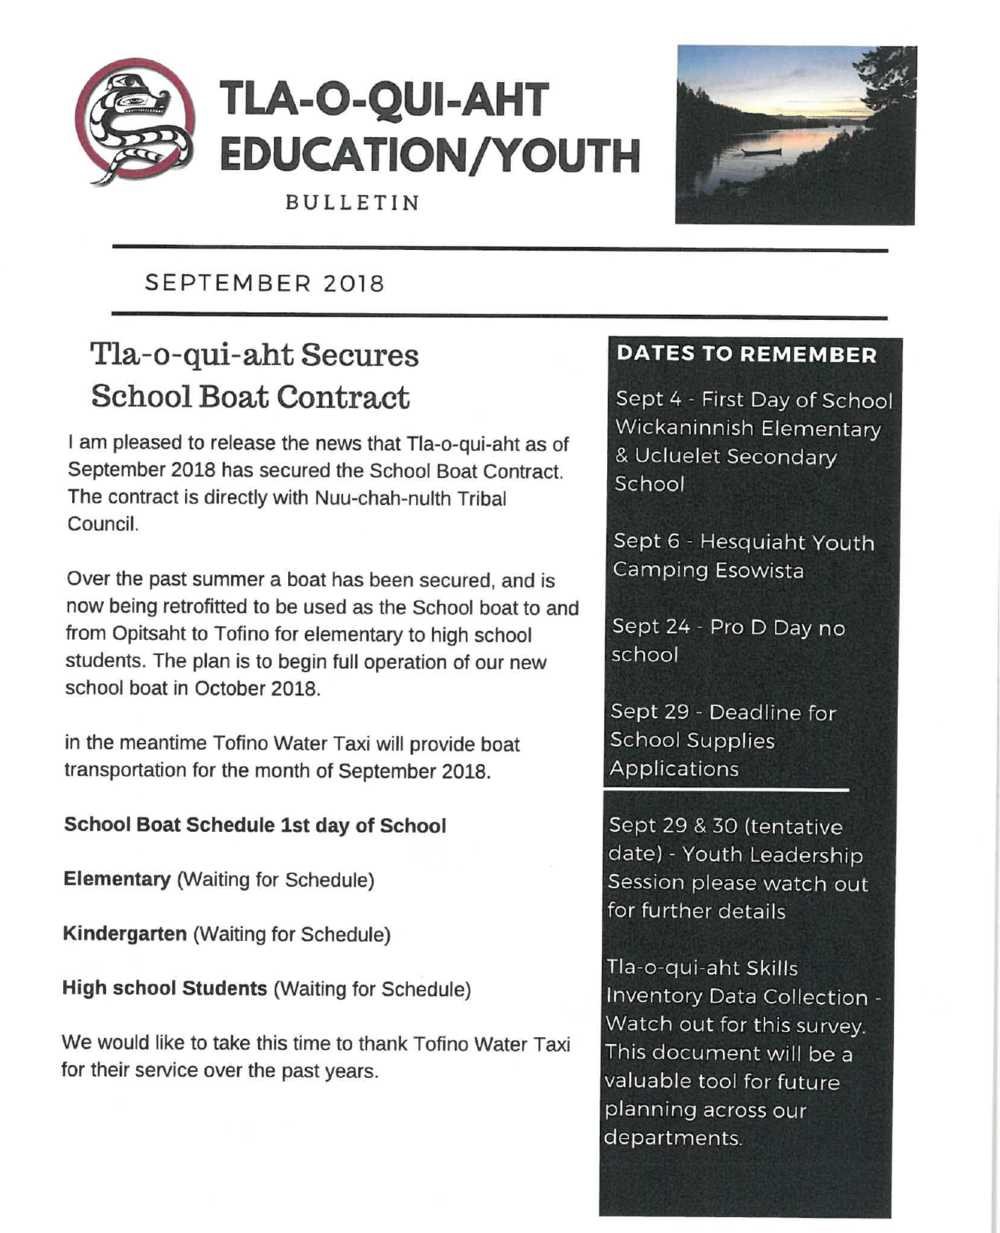 Edu Bulletin Sept 2018.PNG